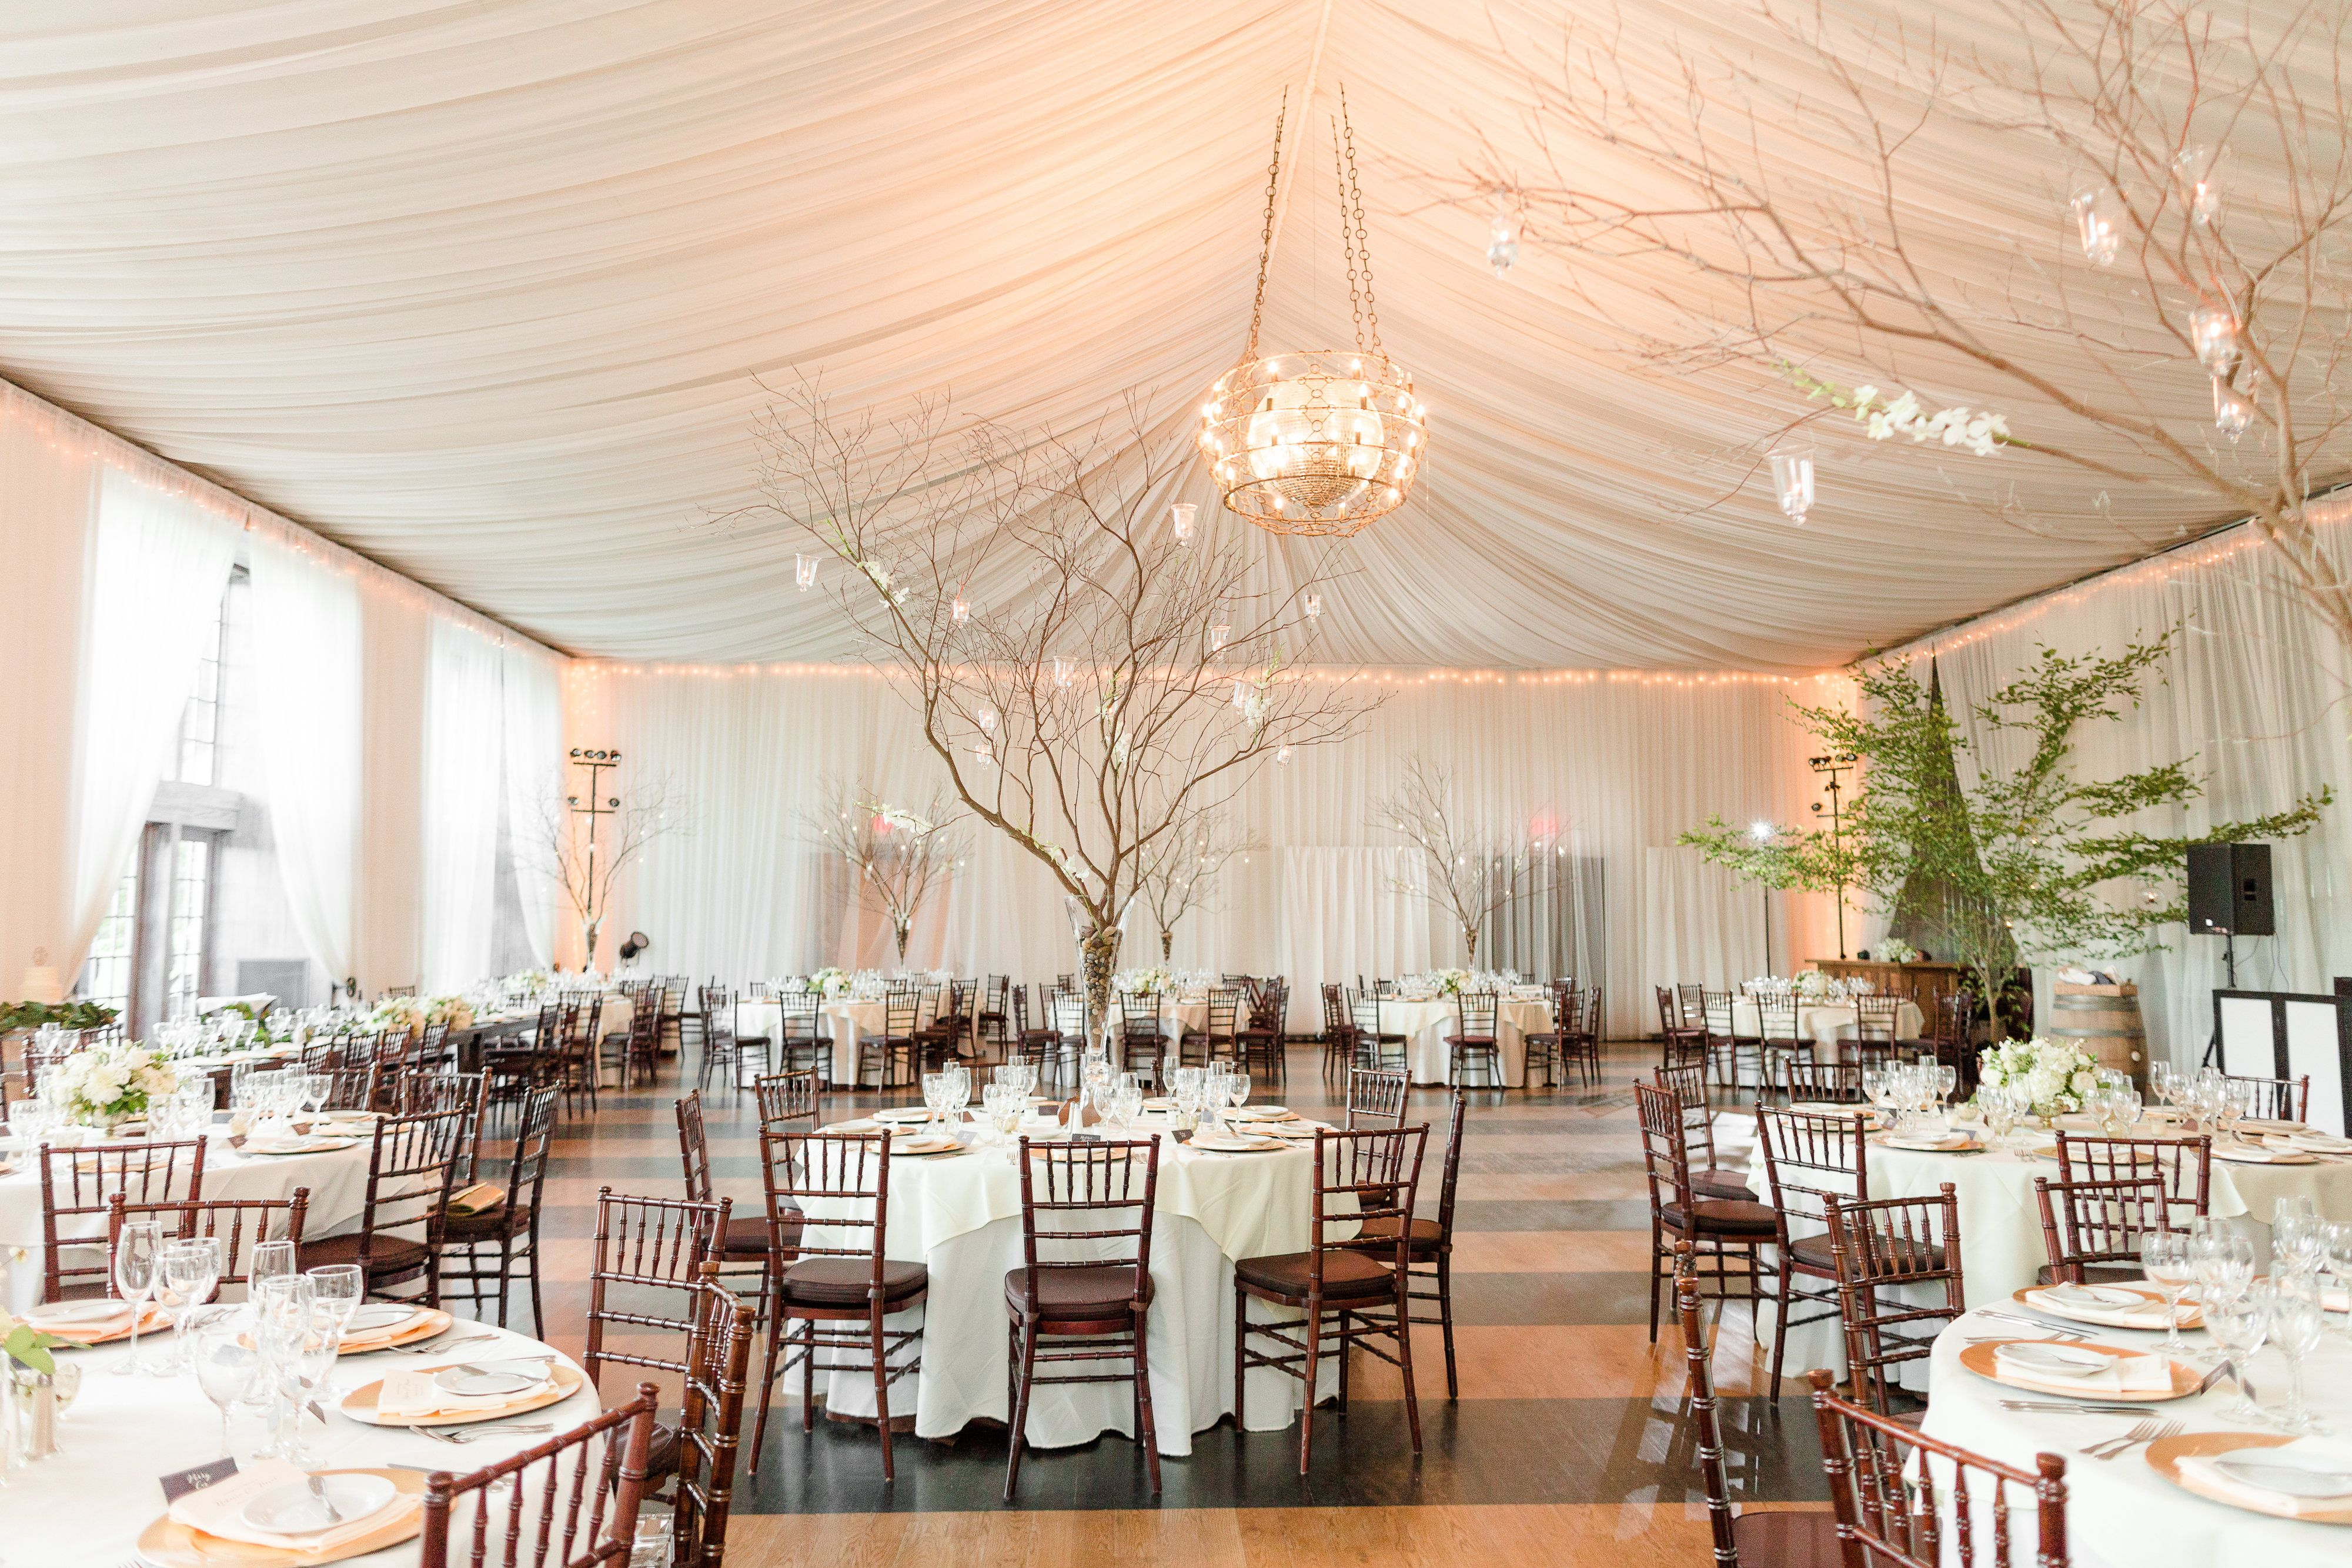 Indoor Reception With Large Tree Branch Centerpieces A Veritas Vineyard Winery Wedding In Charlottesville Virginia Photos By Katelyn James Photography